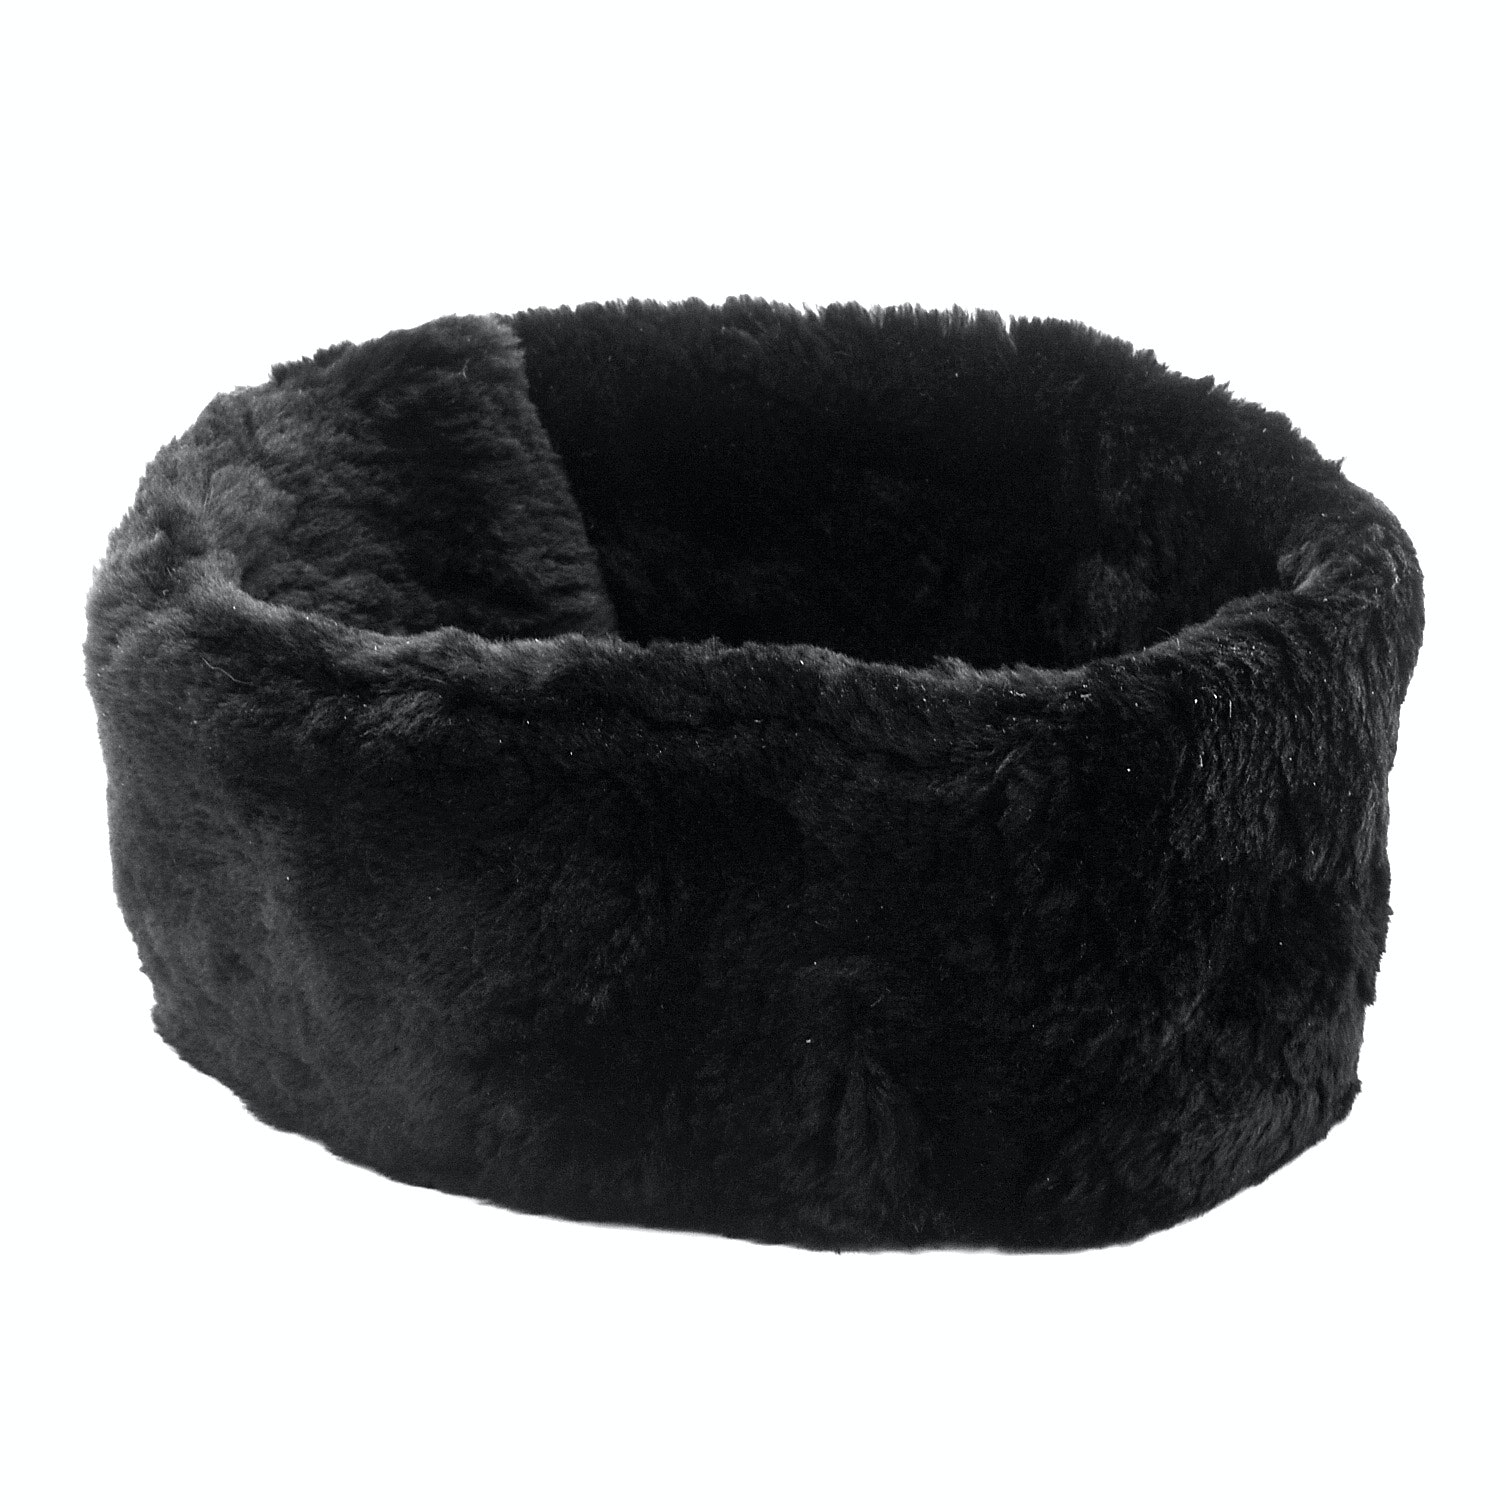 Augustina Dyed Black Beaver Fur Collar from Carmel By The Sea